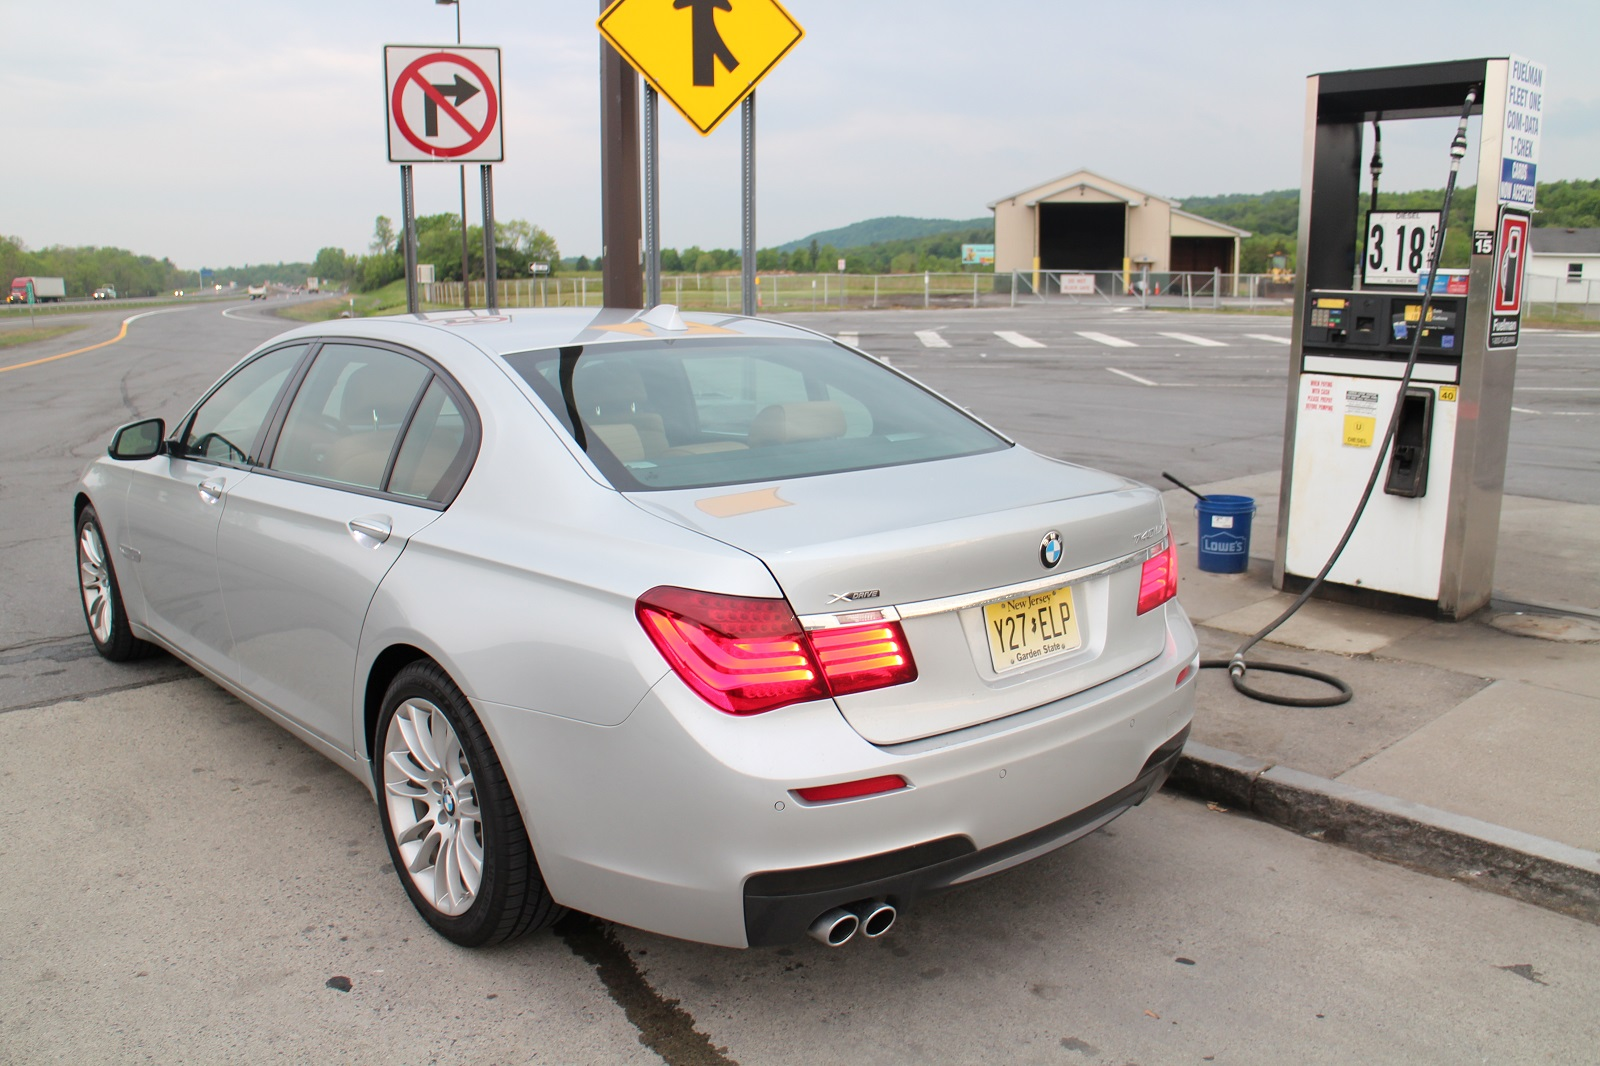 2015 BMW 740Ld xDrive Diesel Fuel Economy Review